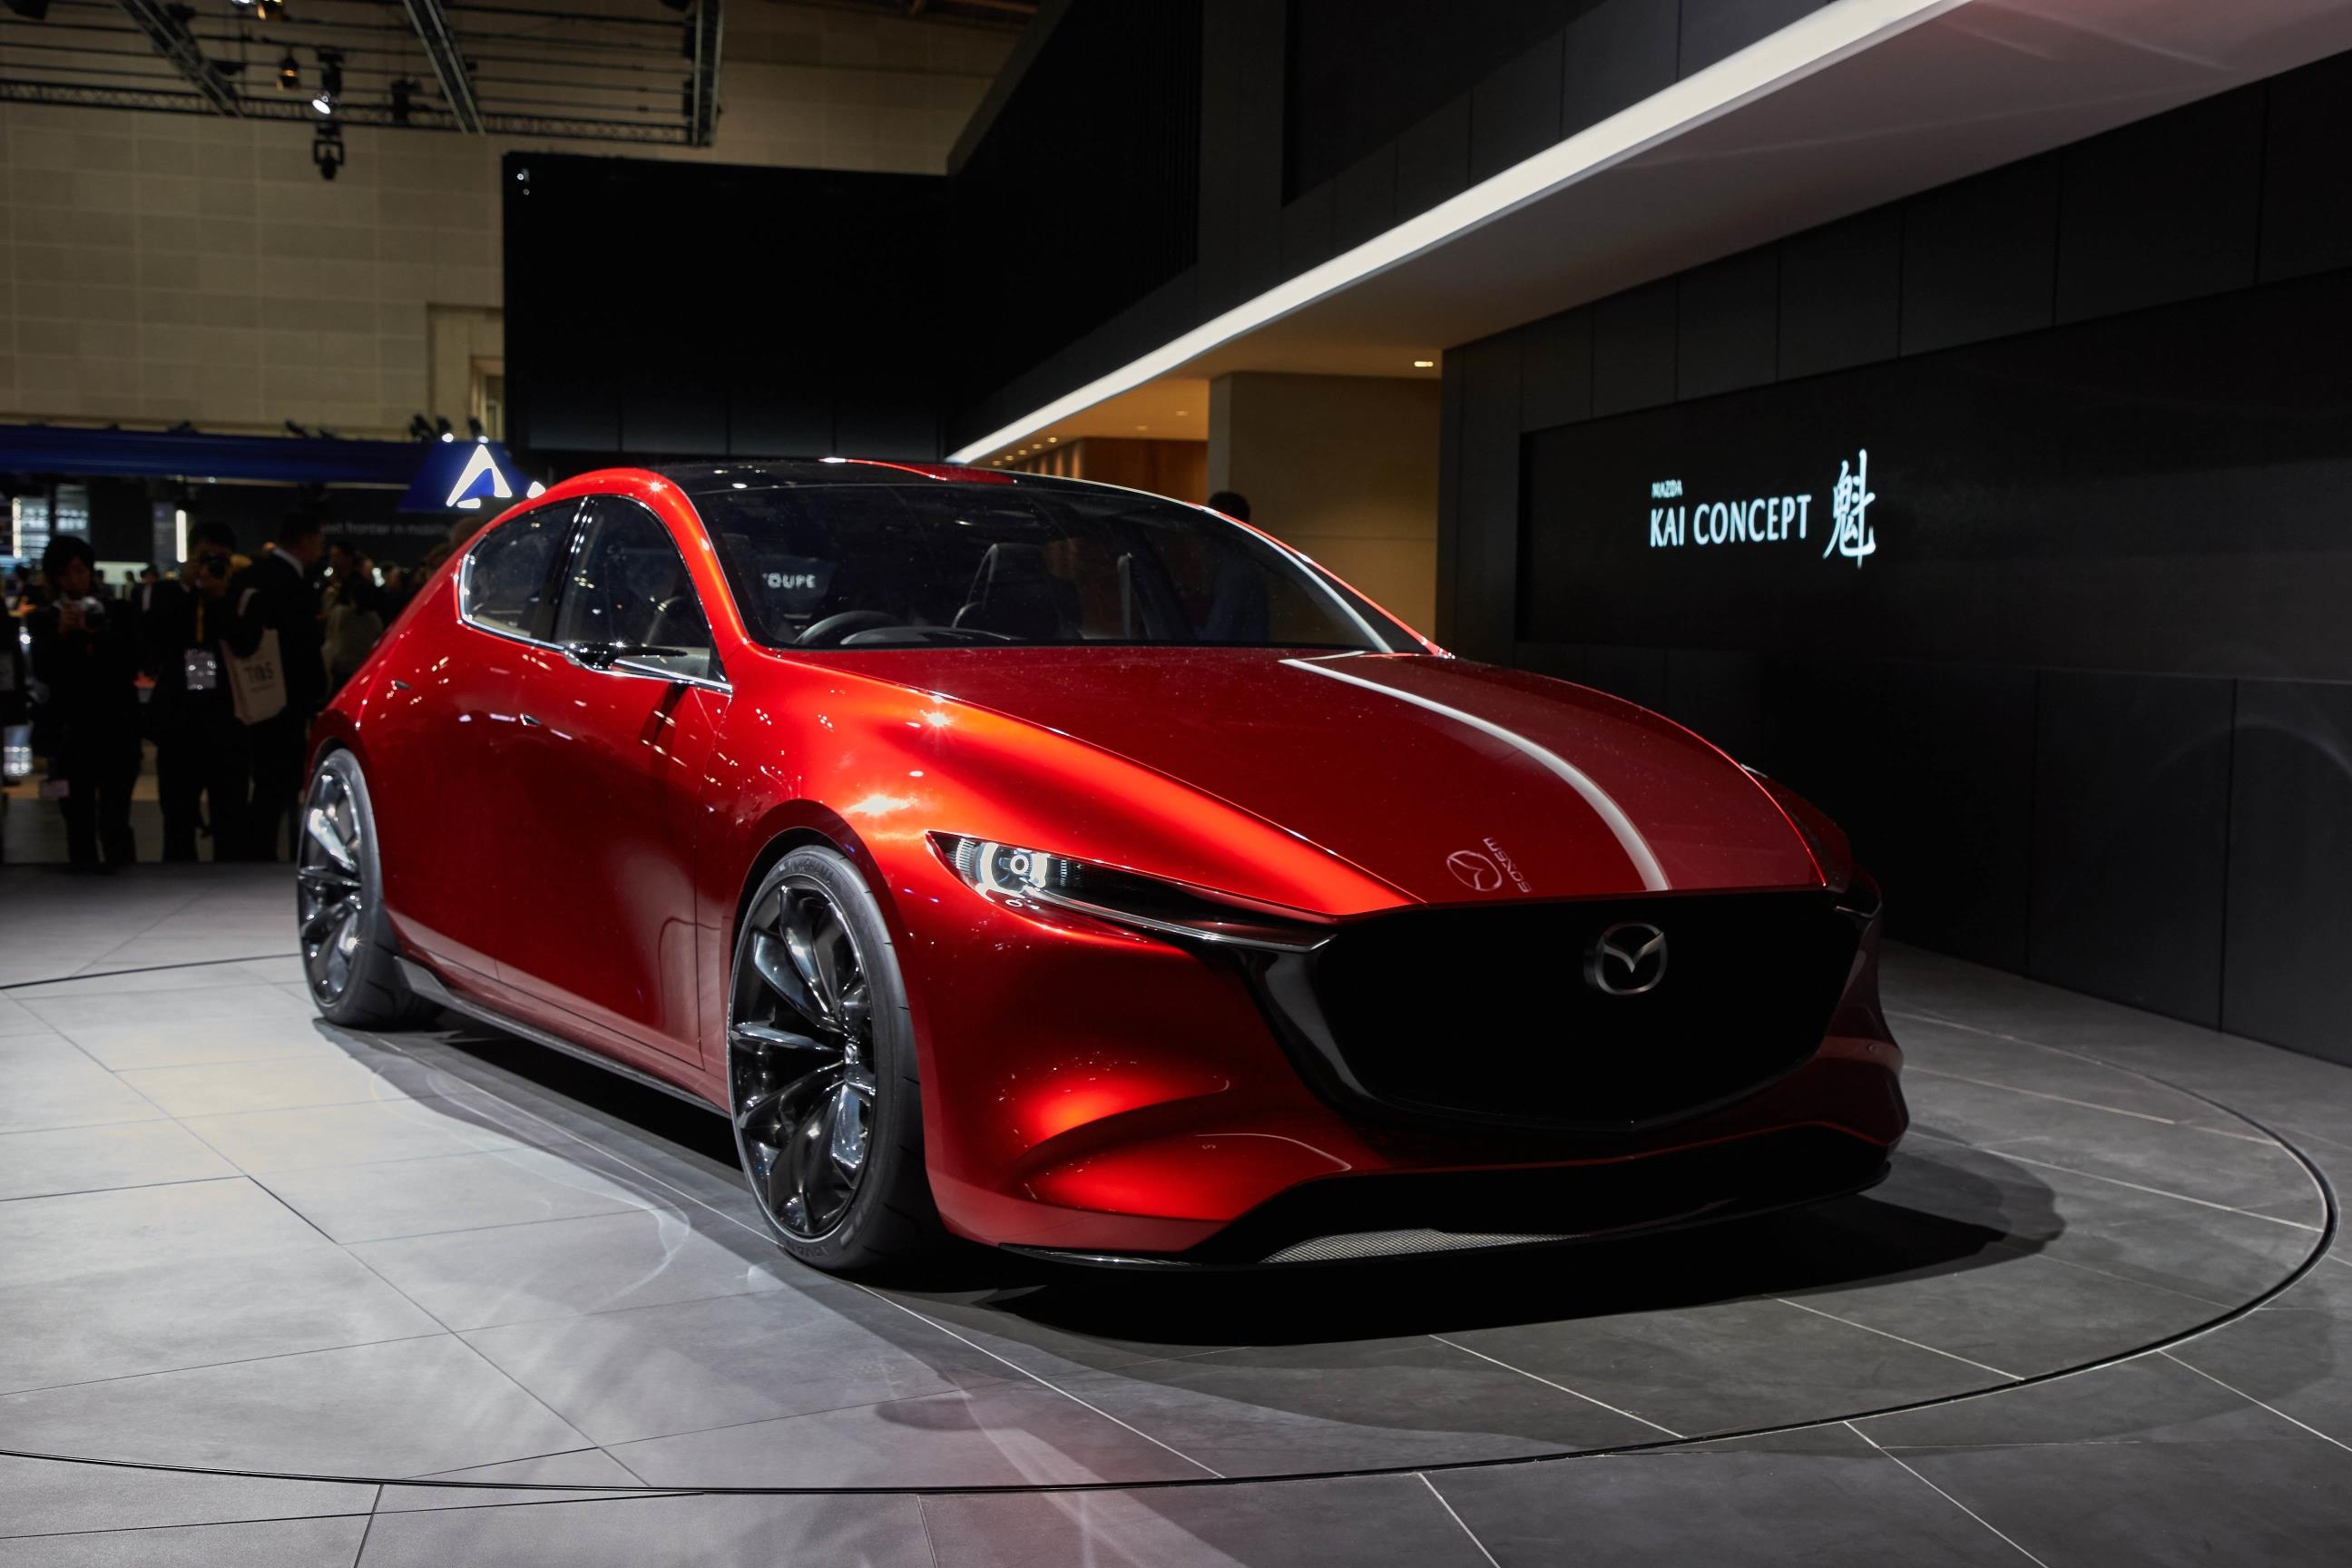 https://s1.cdn.autoevolution.com/images/news/gallery/mazda-kai-and-vision-coupe-concepts-reveal-carbon-fiber-in-tokyo_4.jpg